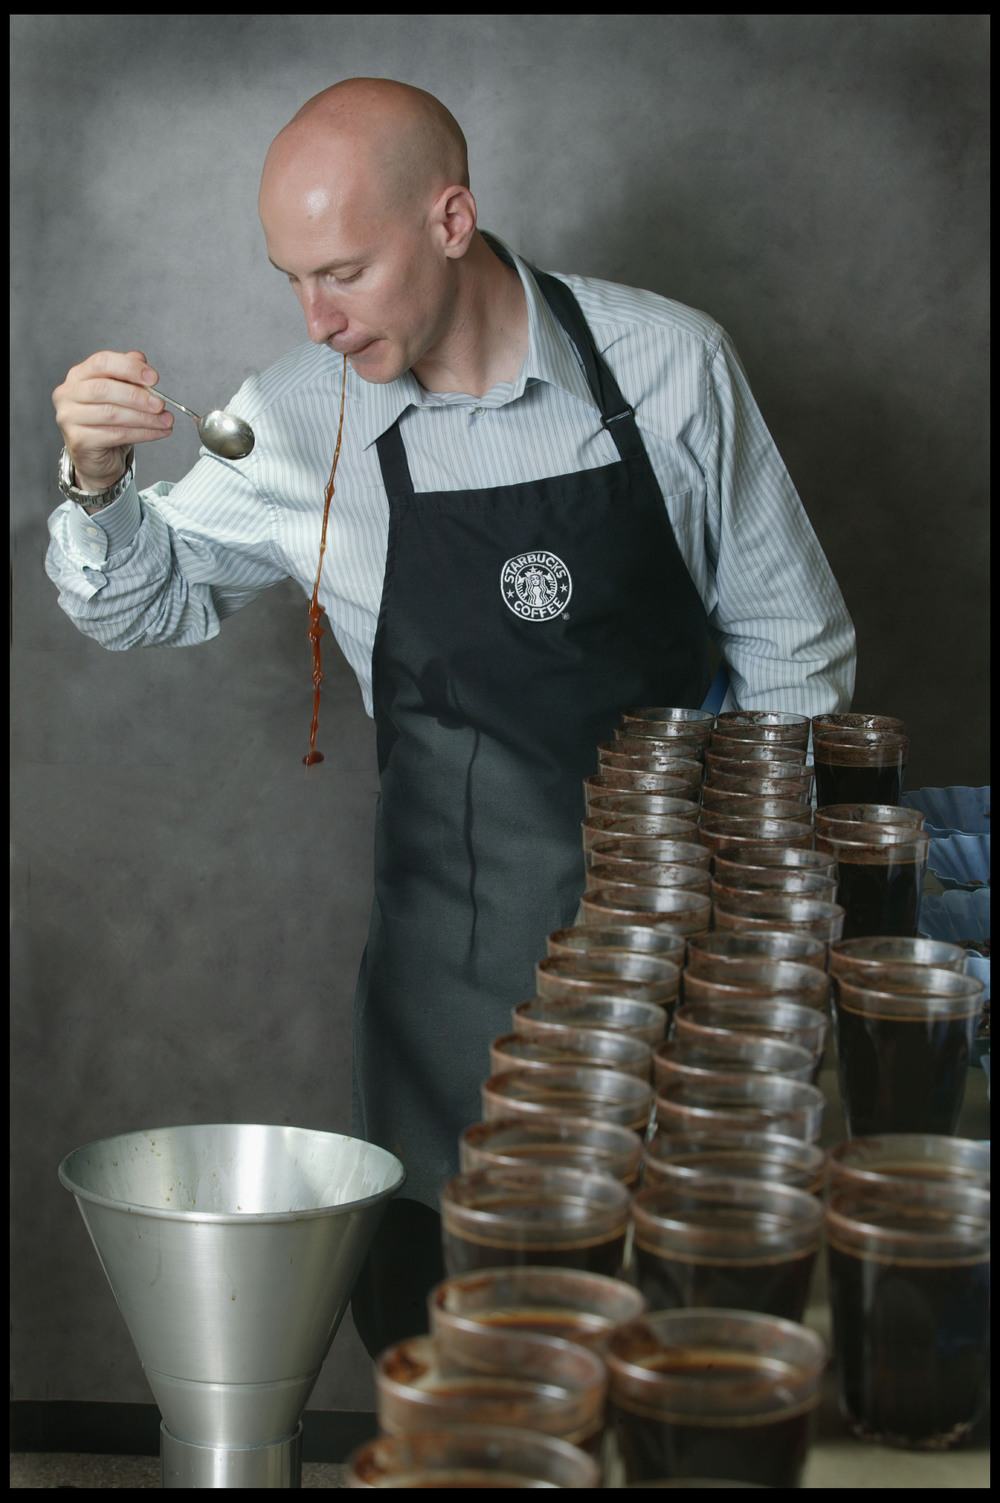 Cupping, Lausanne, Switzerland